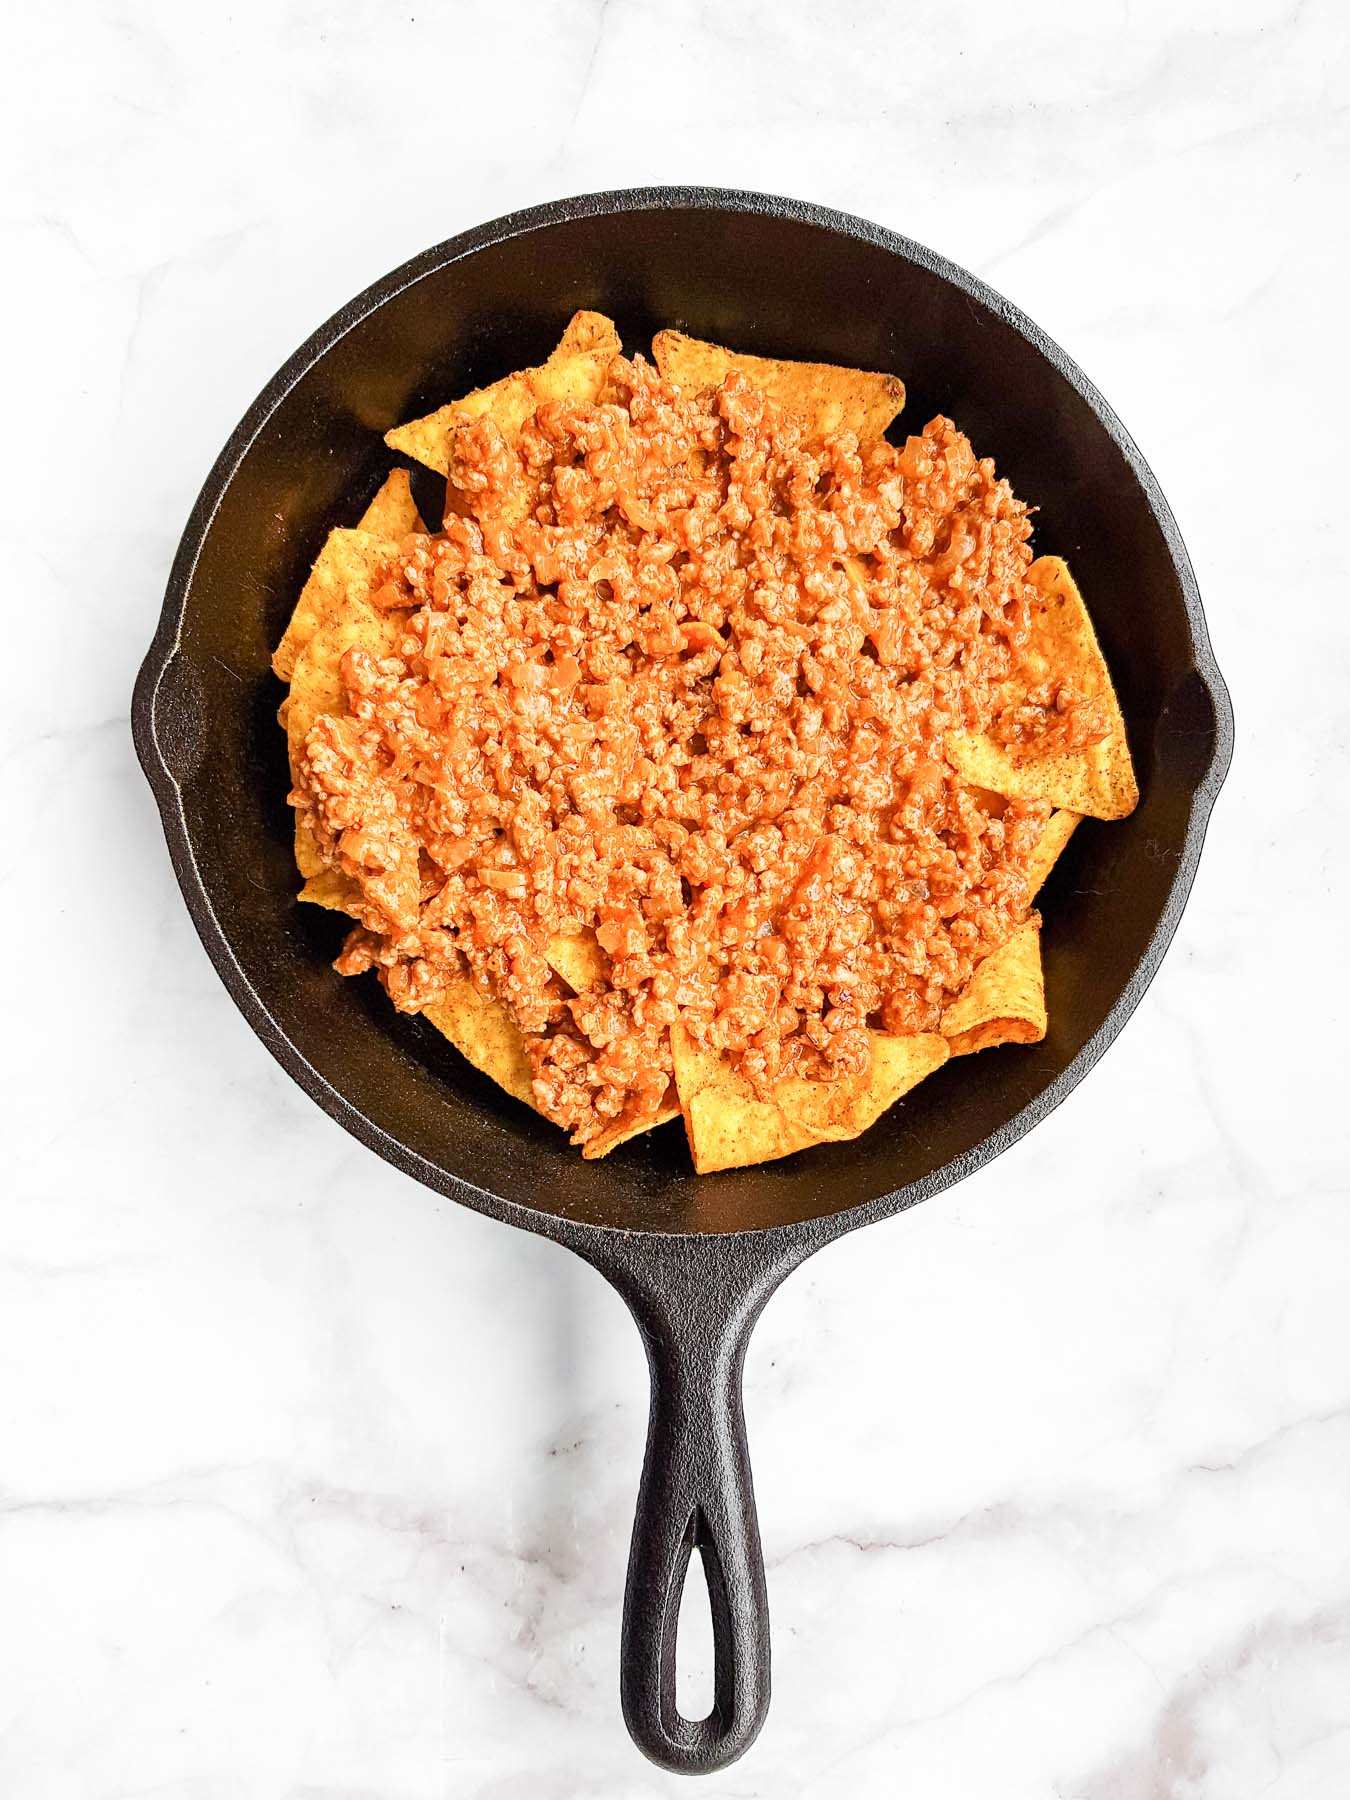 tortilla chips topped with cooked ground beef in a skilet